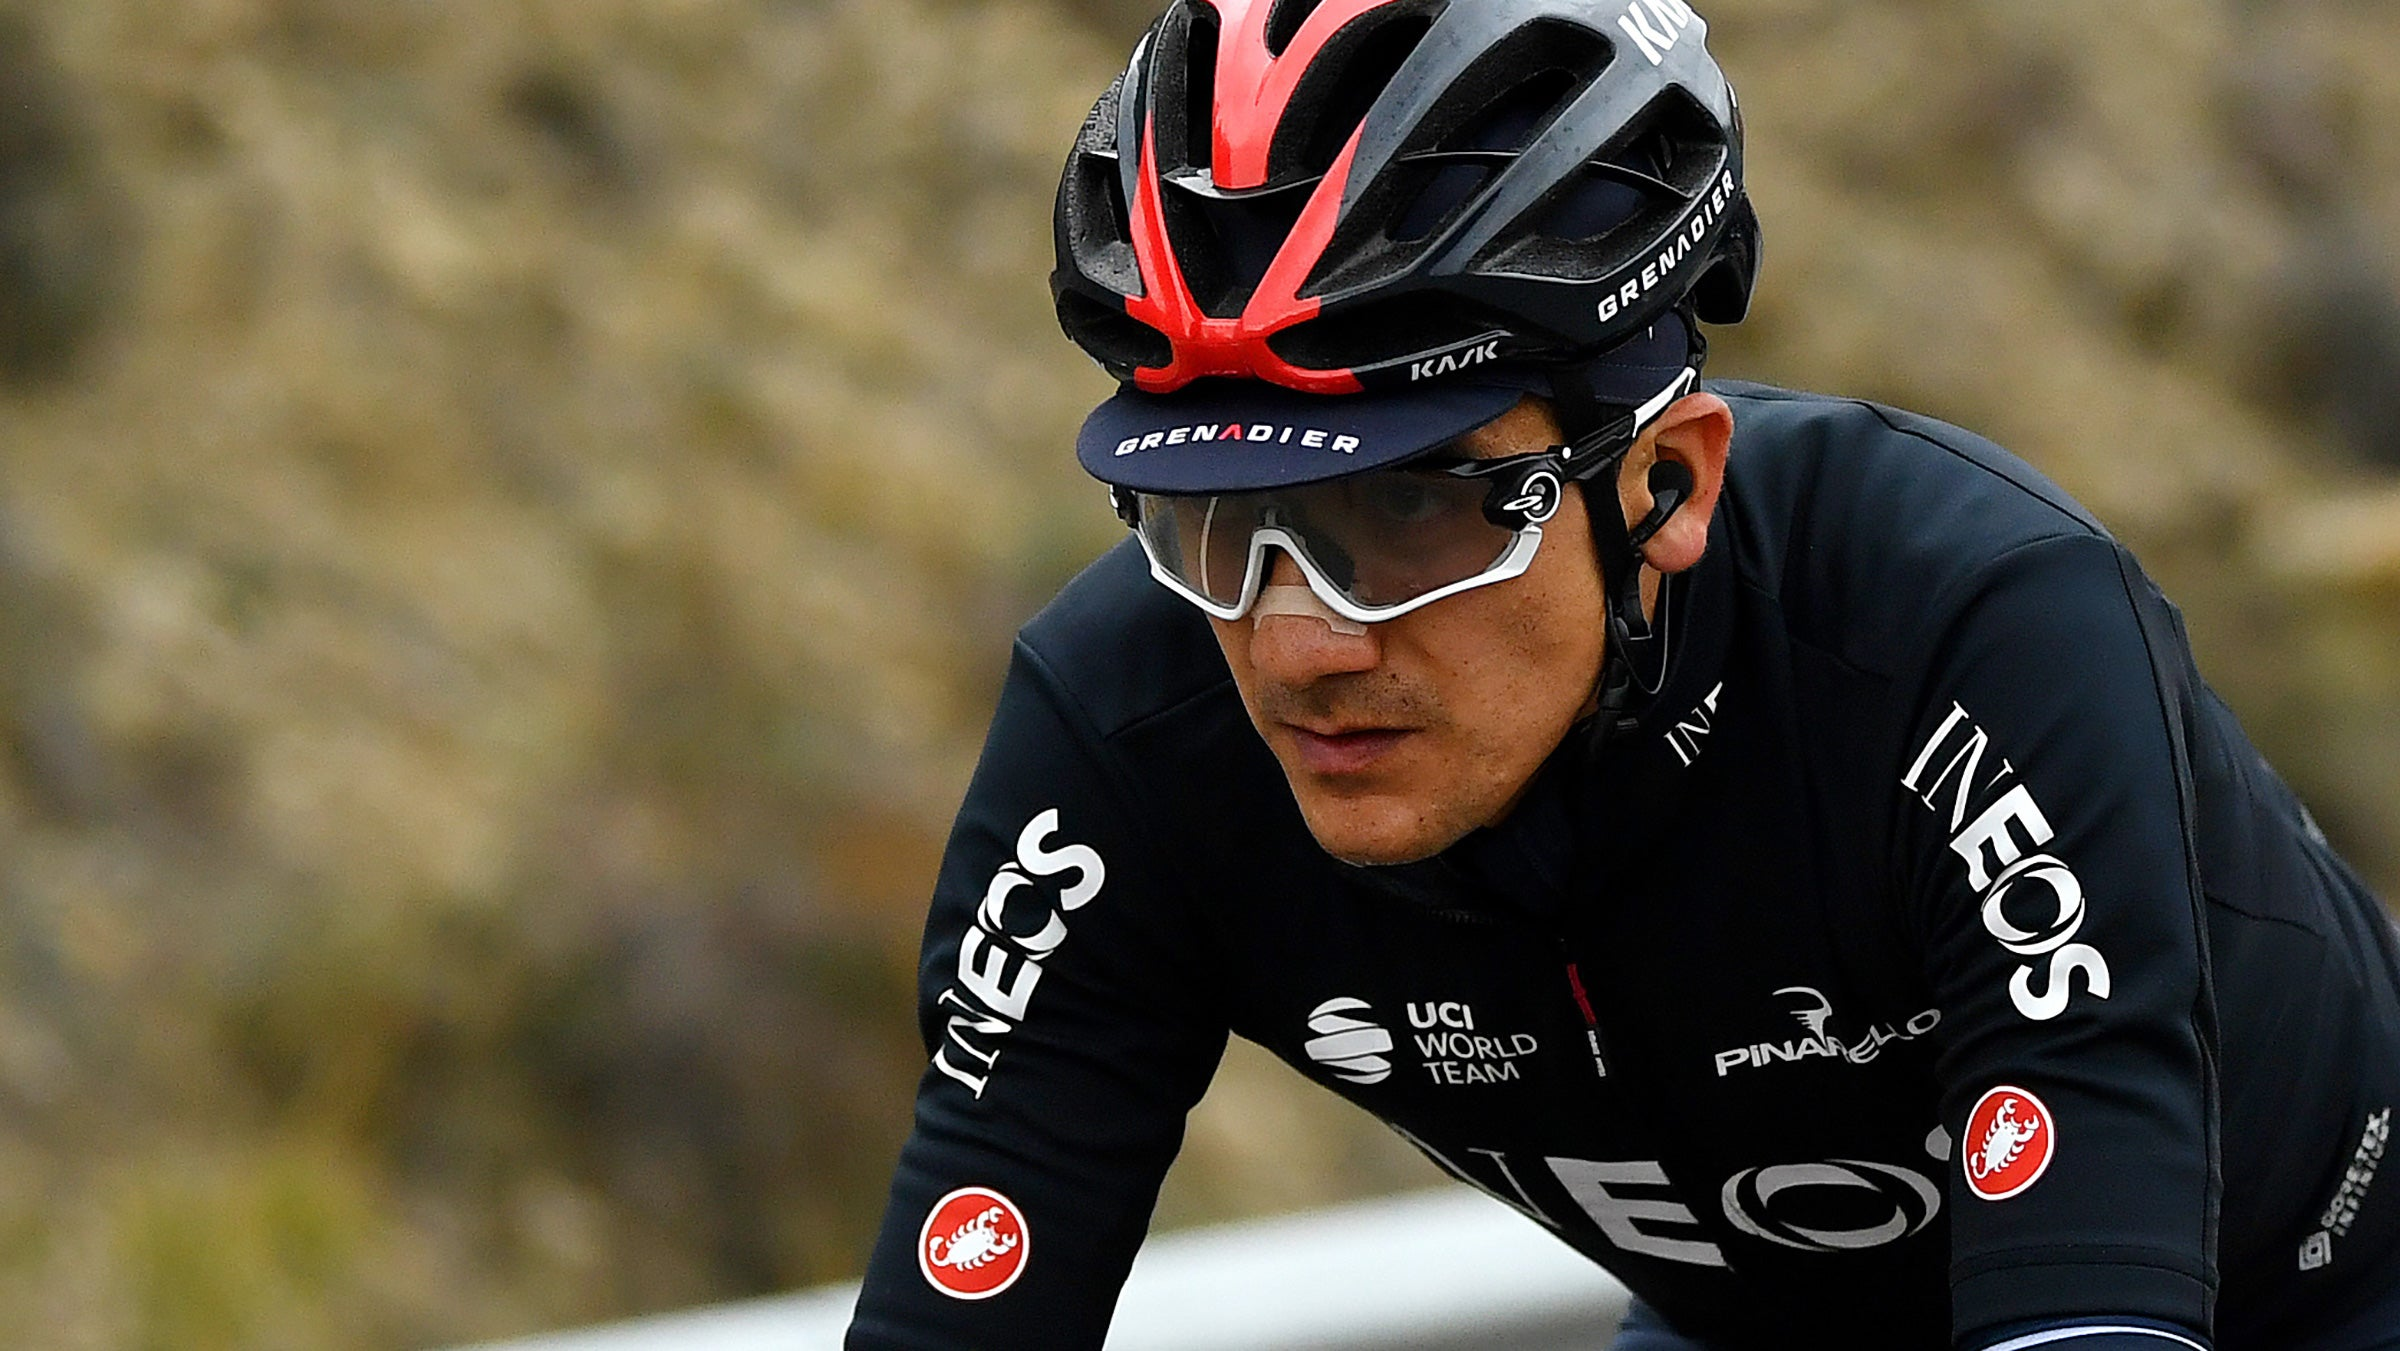 Richard Carapaz doesn't plan on letting go of Vuelta a España leader's jersey – VeloNews.com